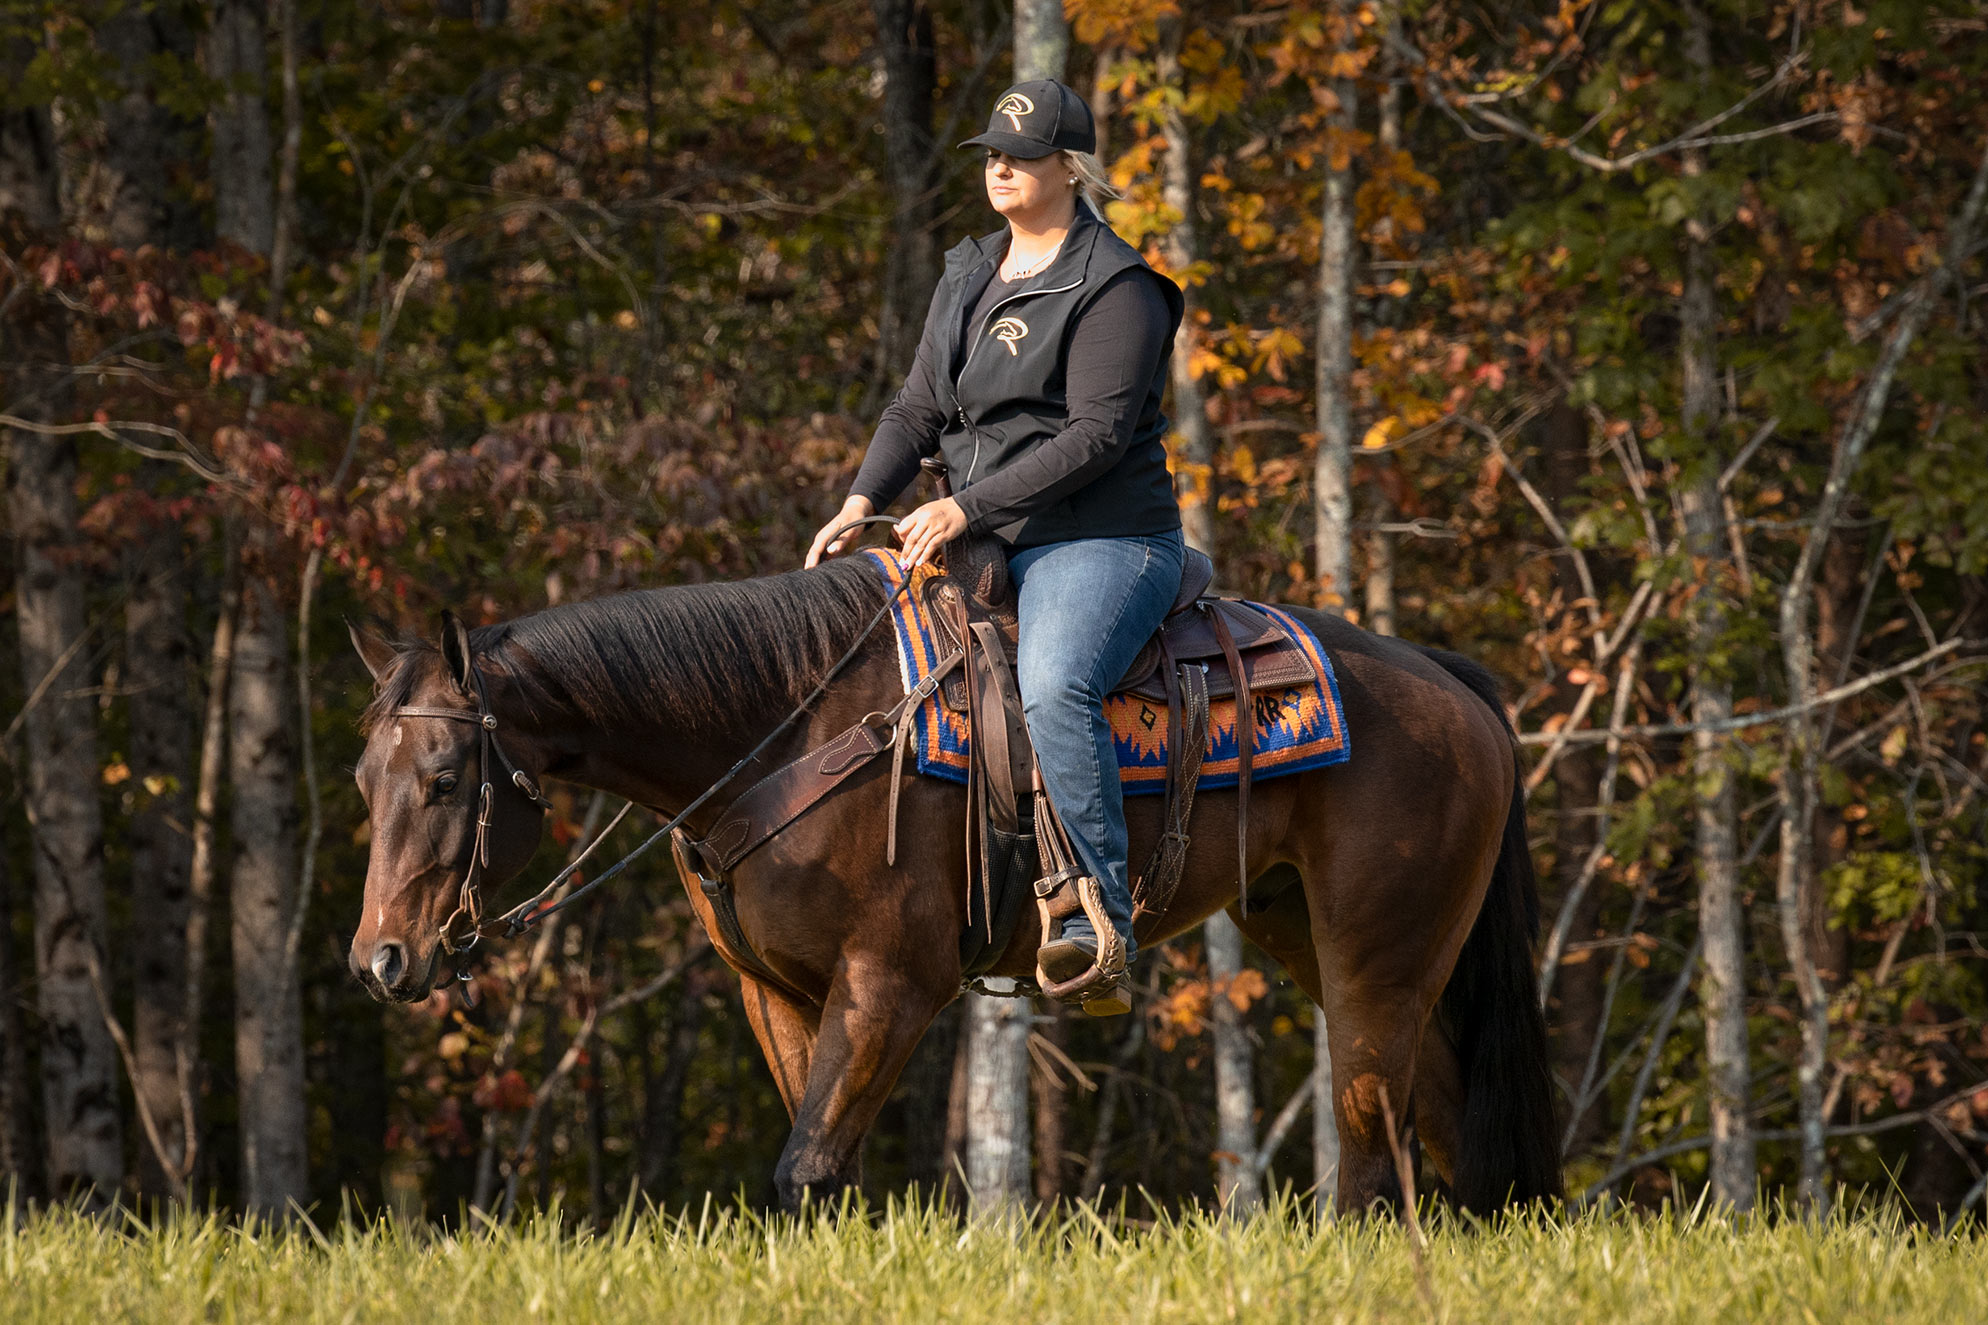 006-Ace-Luxury-Trail-Horse-For-Sale